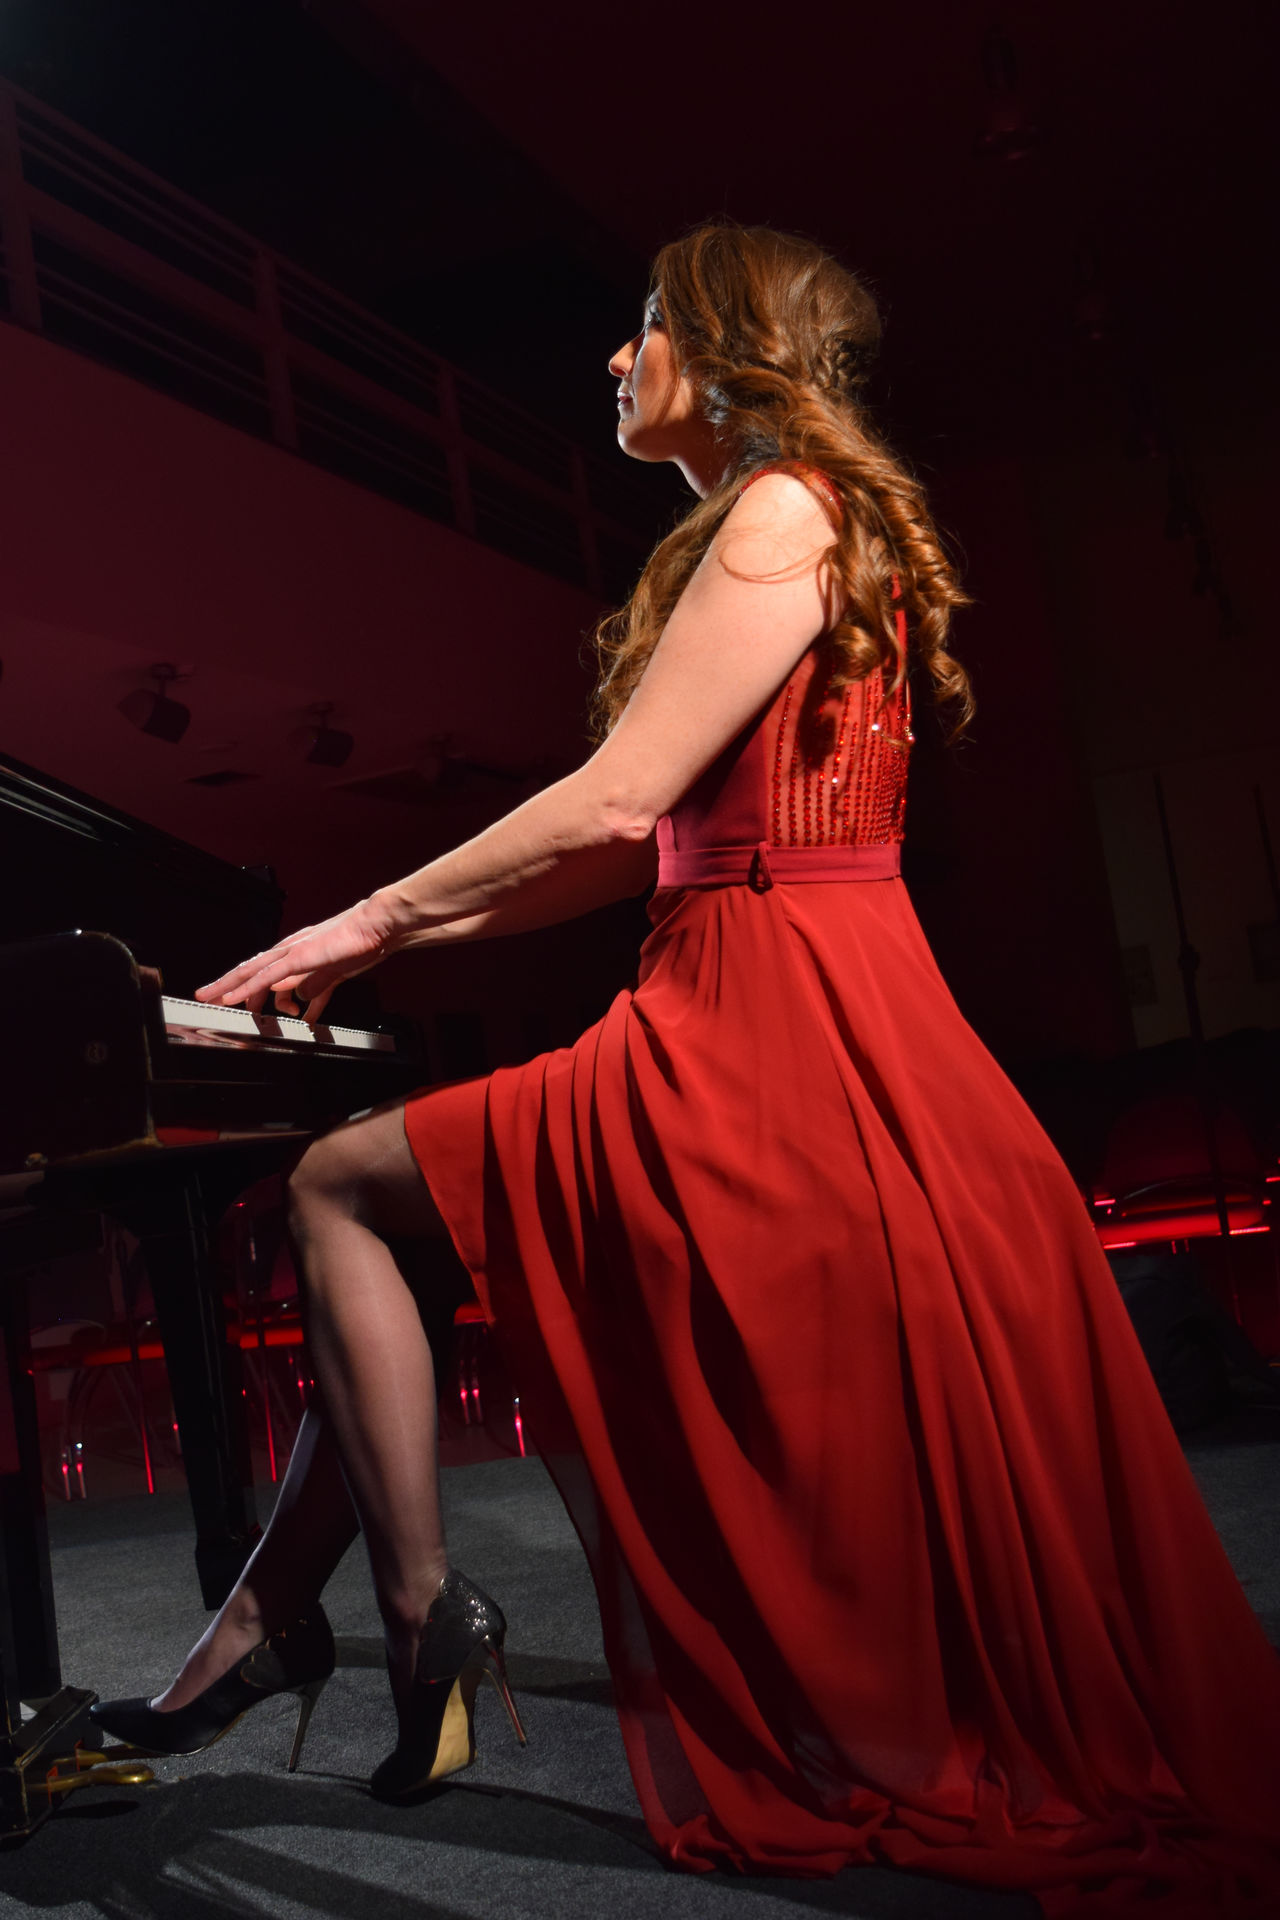 One Woman Only Beautiful Woman Glamour Elégance Arts Culture And Entertainment Piano Moments Performing Arts Event Classical Concert Red Dress Dress Concert Photography Evening Gown Red Piano Player Grand Piano Piano Concert Night Women Around The World